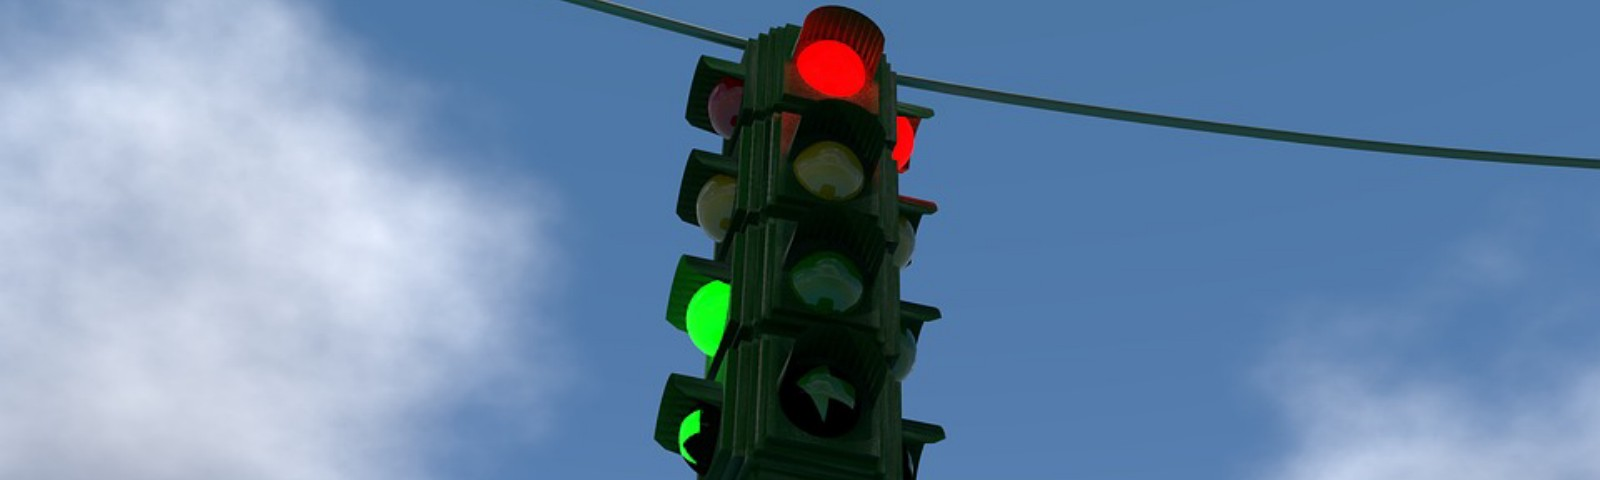 A traffic light signaling 'stop'.